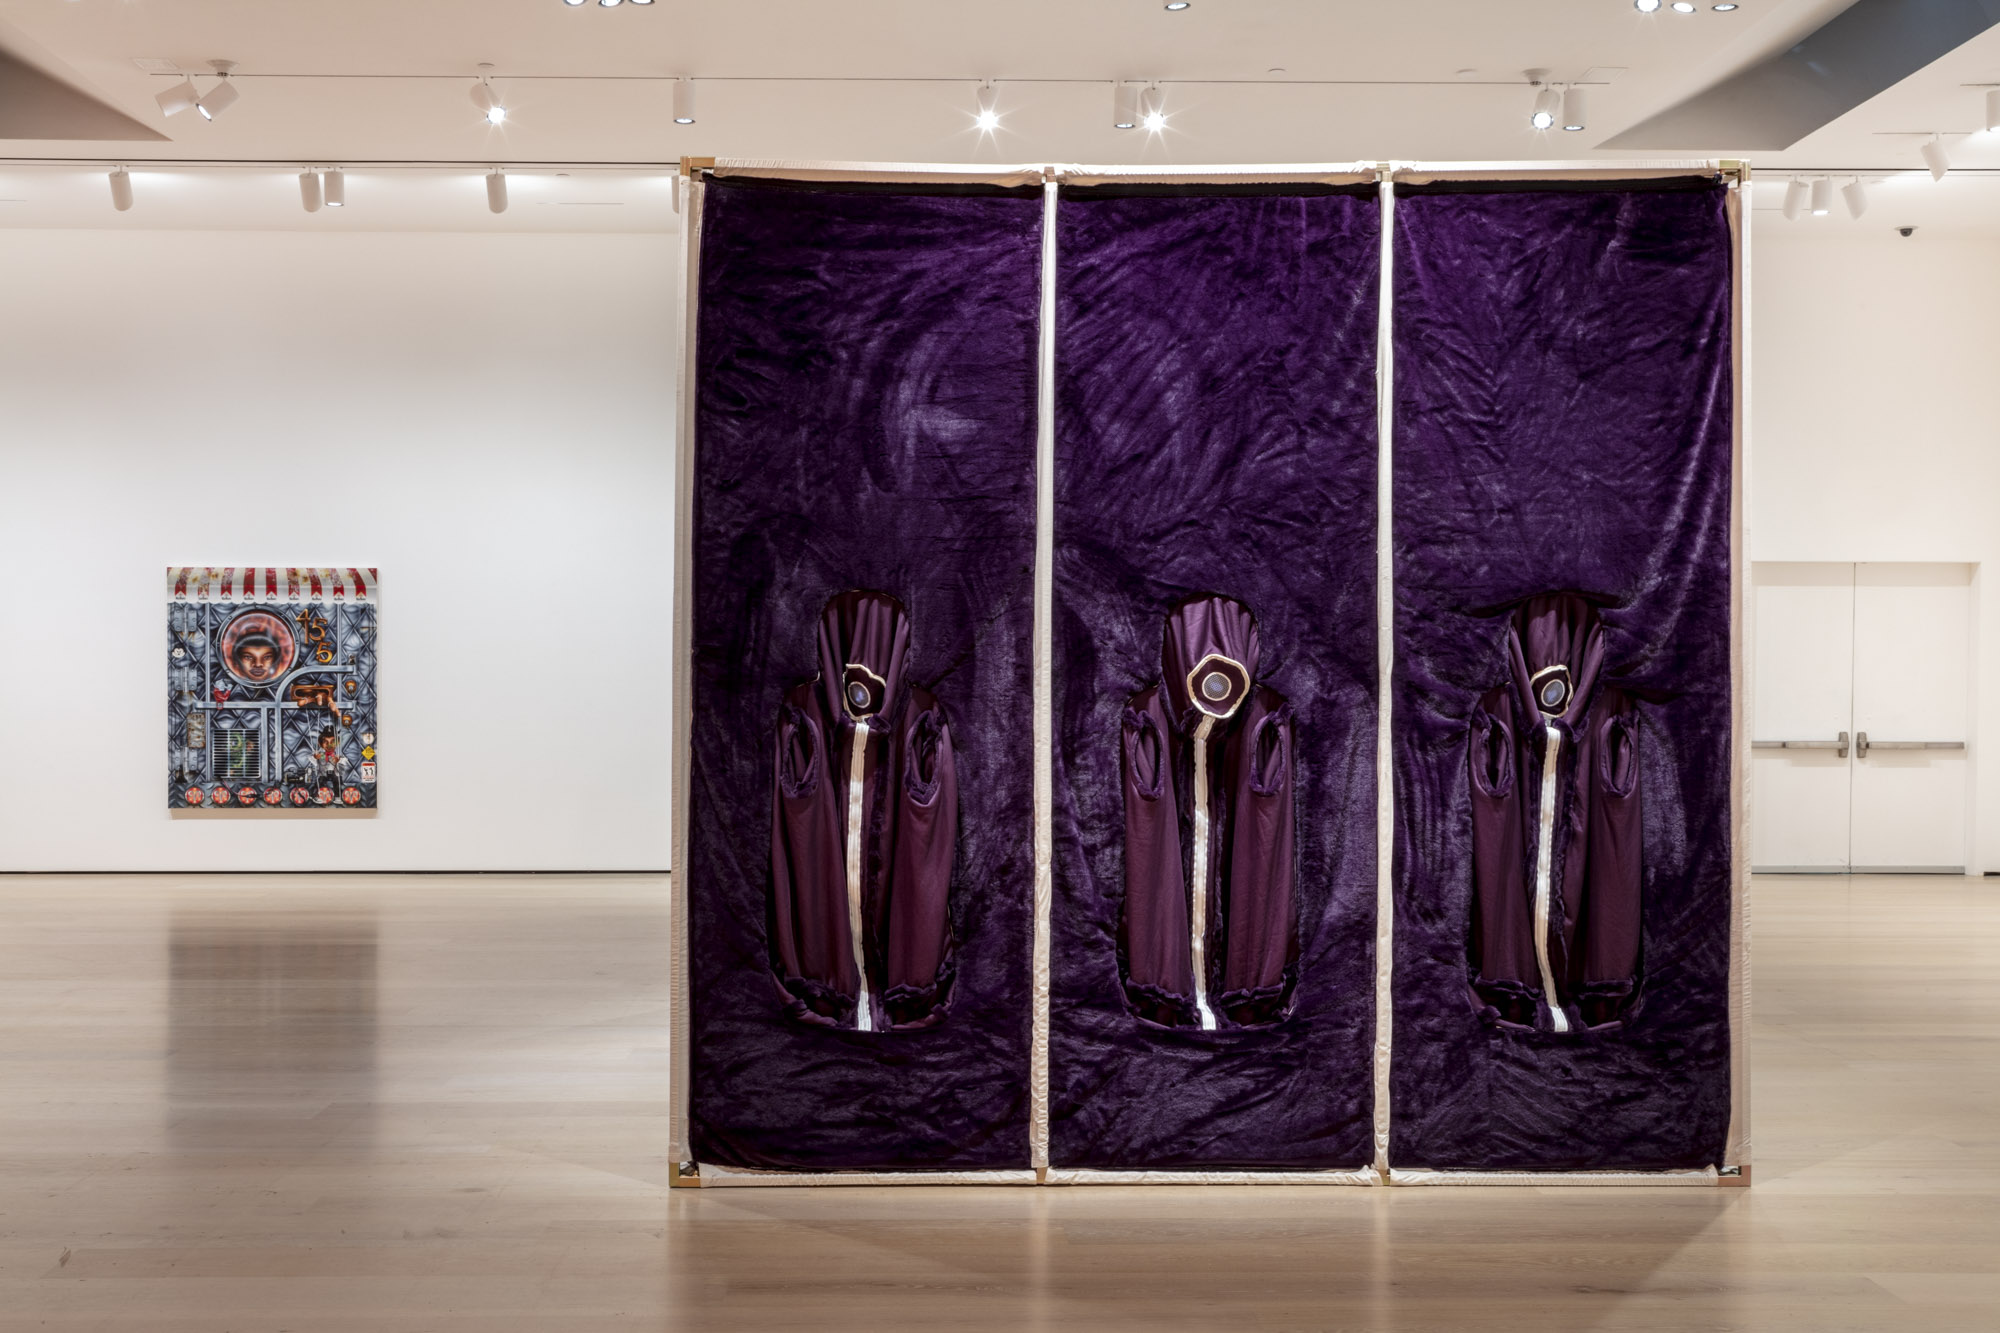 """An installation view of Nicola L.'s work at """"Made in L.A. 2020: a version."""" at Hammer Museum, Los Angeles. 